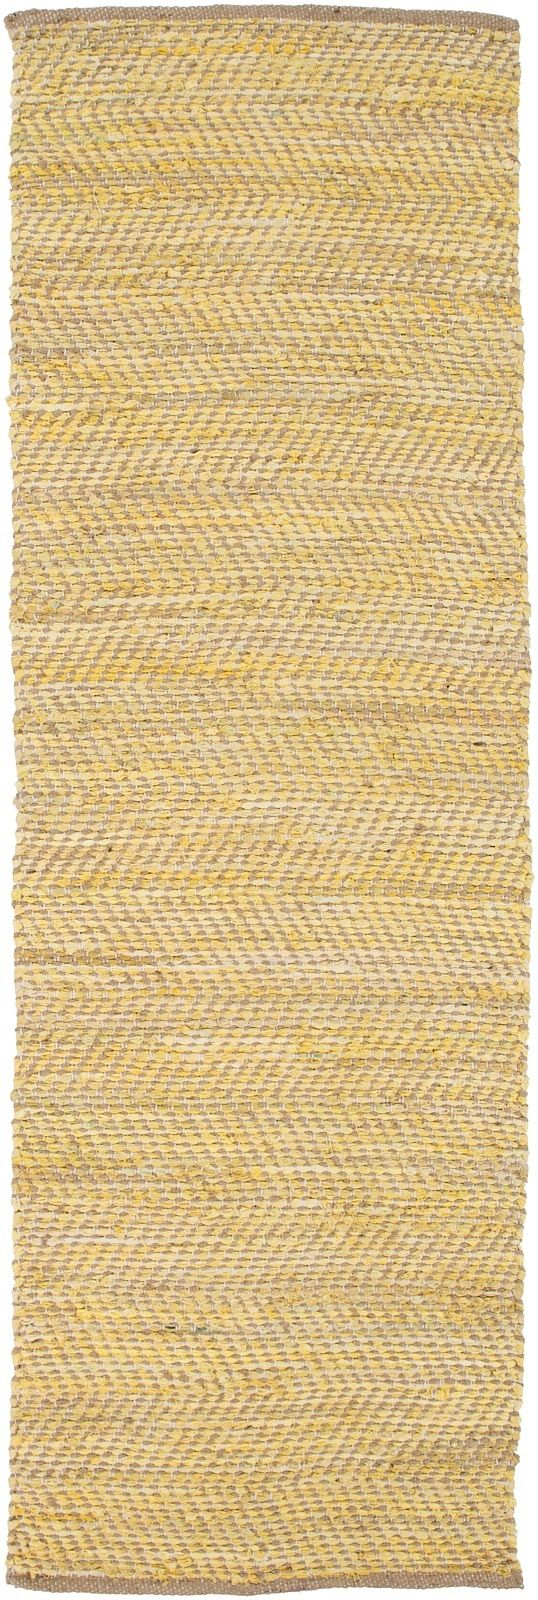 surya fanore natural fiber area rug collection